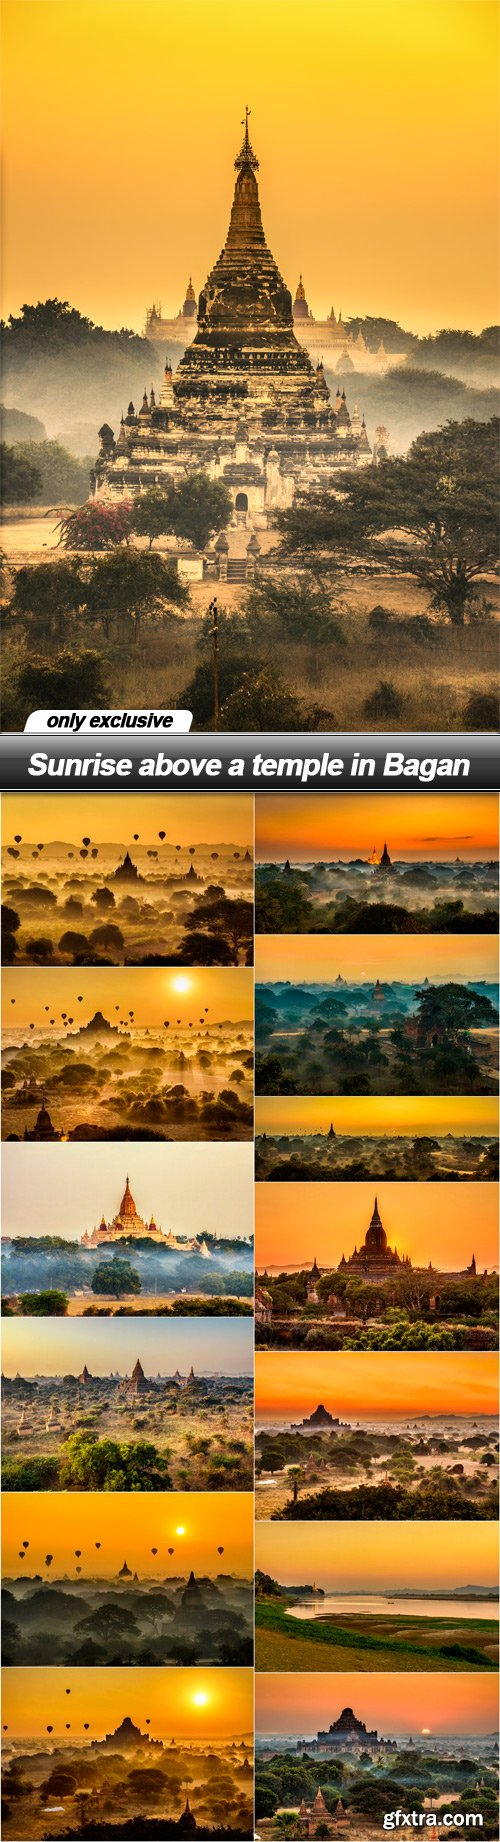 Sunrise above a temple in Bagan - 14 UHQ JPEG